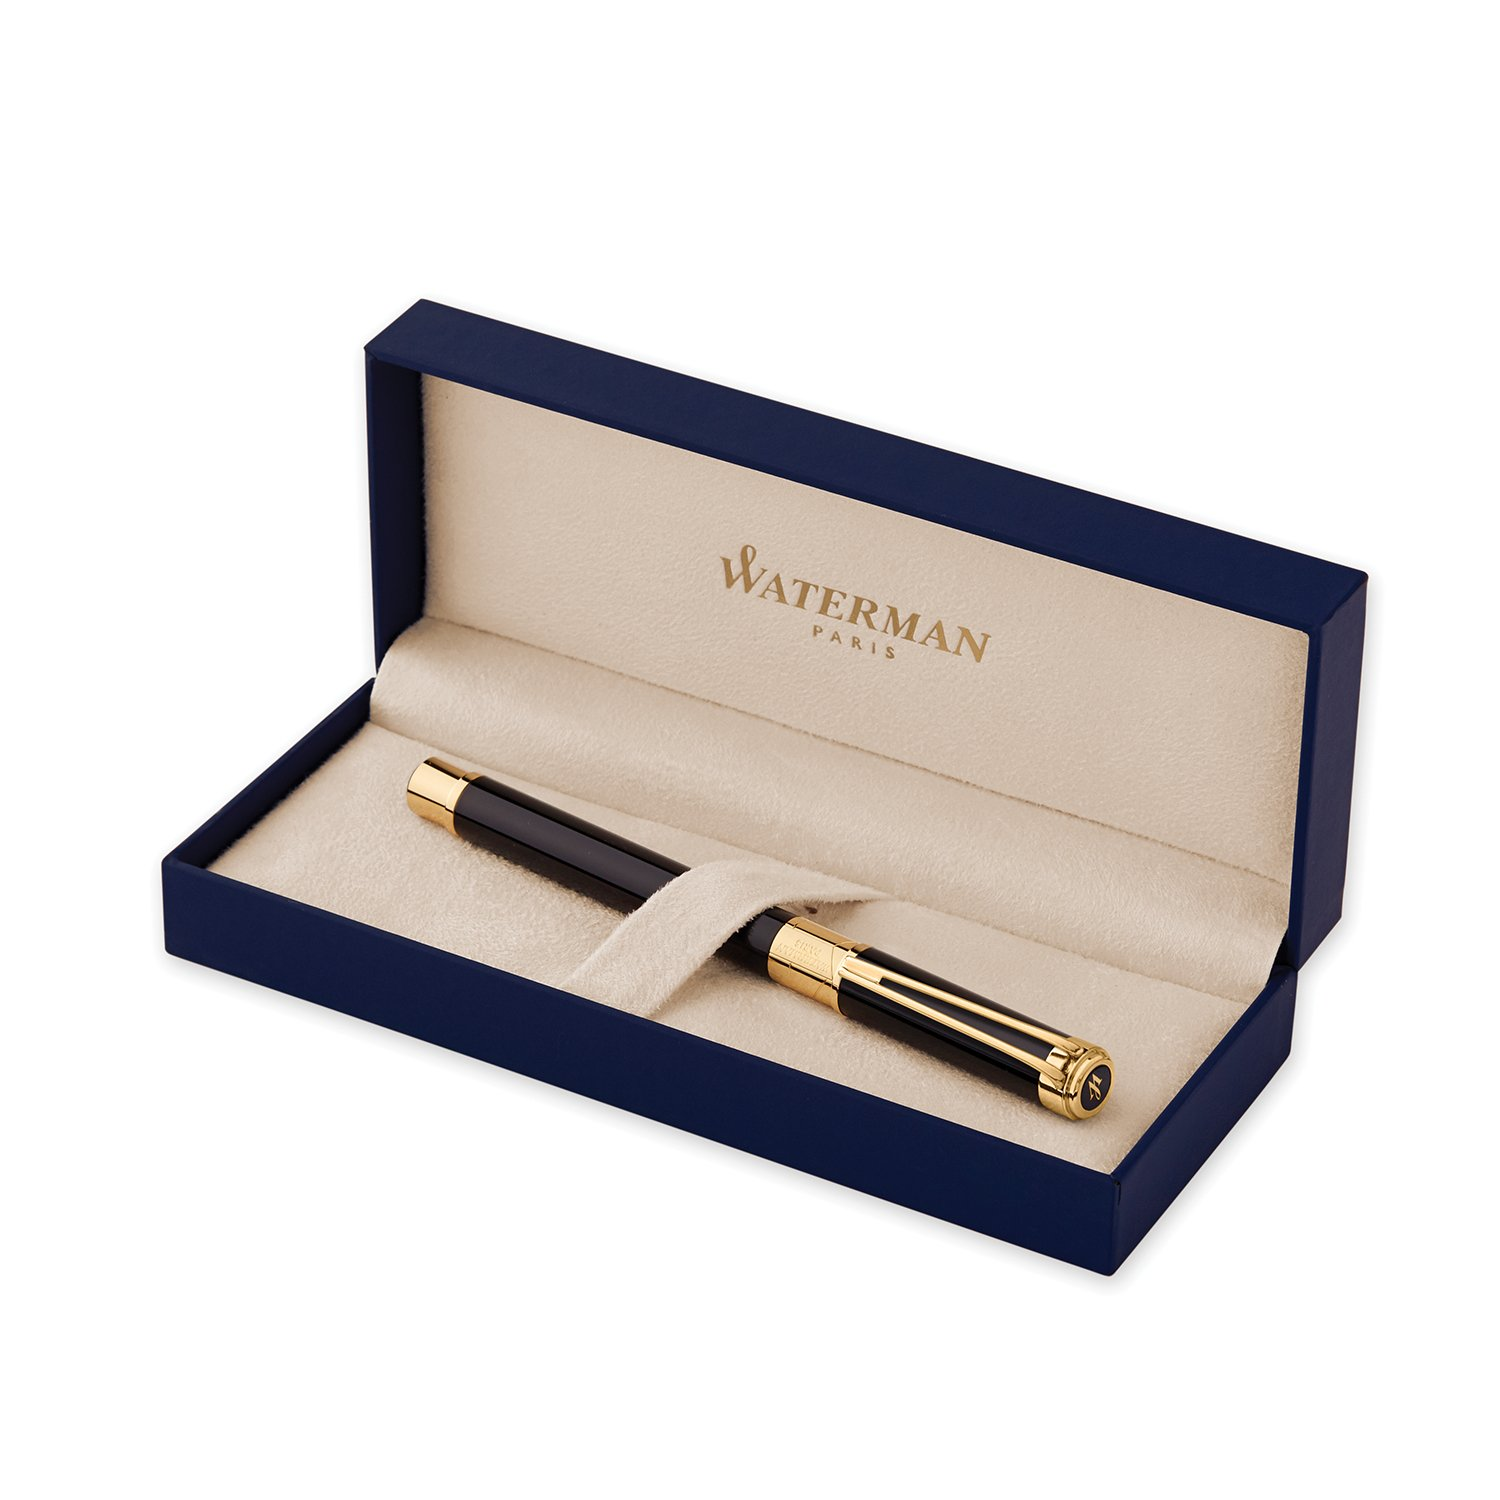 Waterman Perspective Black with Golden Trim, Rollerball pen with Fine Black refill (S0830860) by Waterman (Image #7)